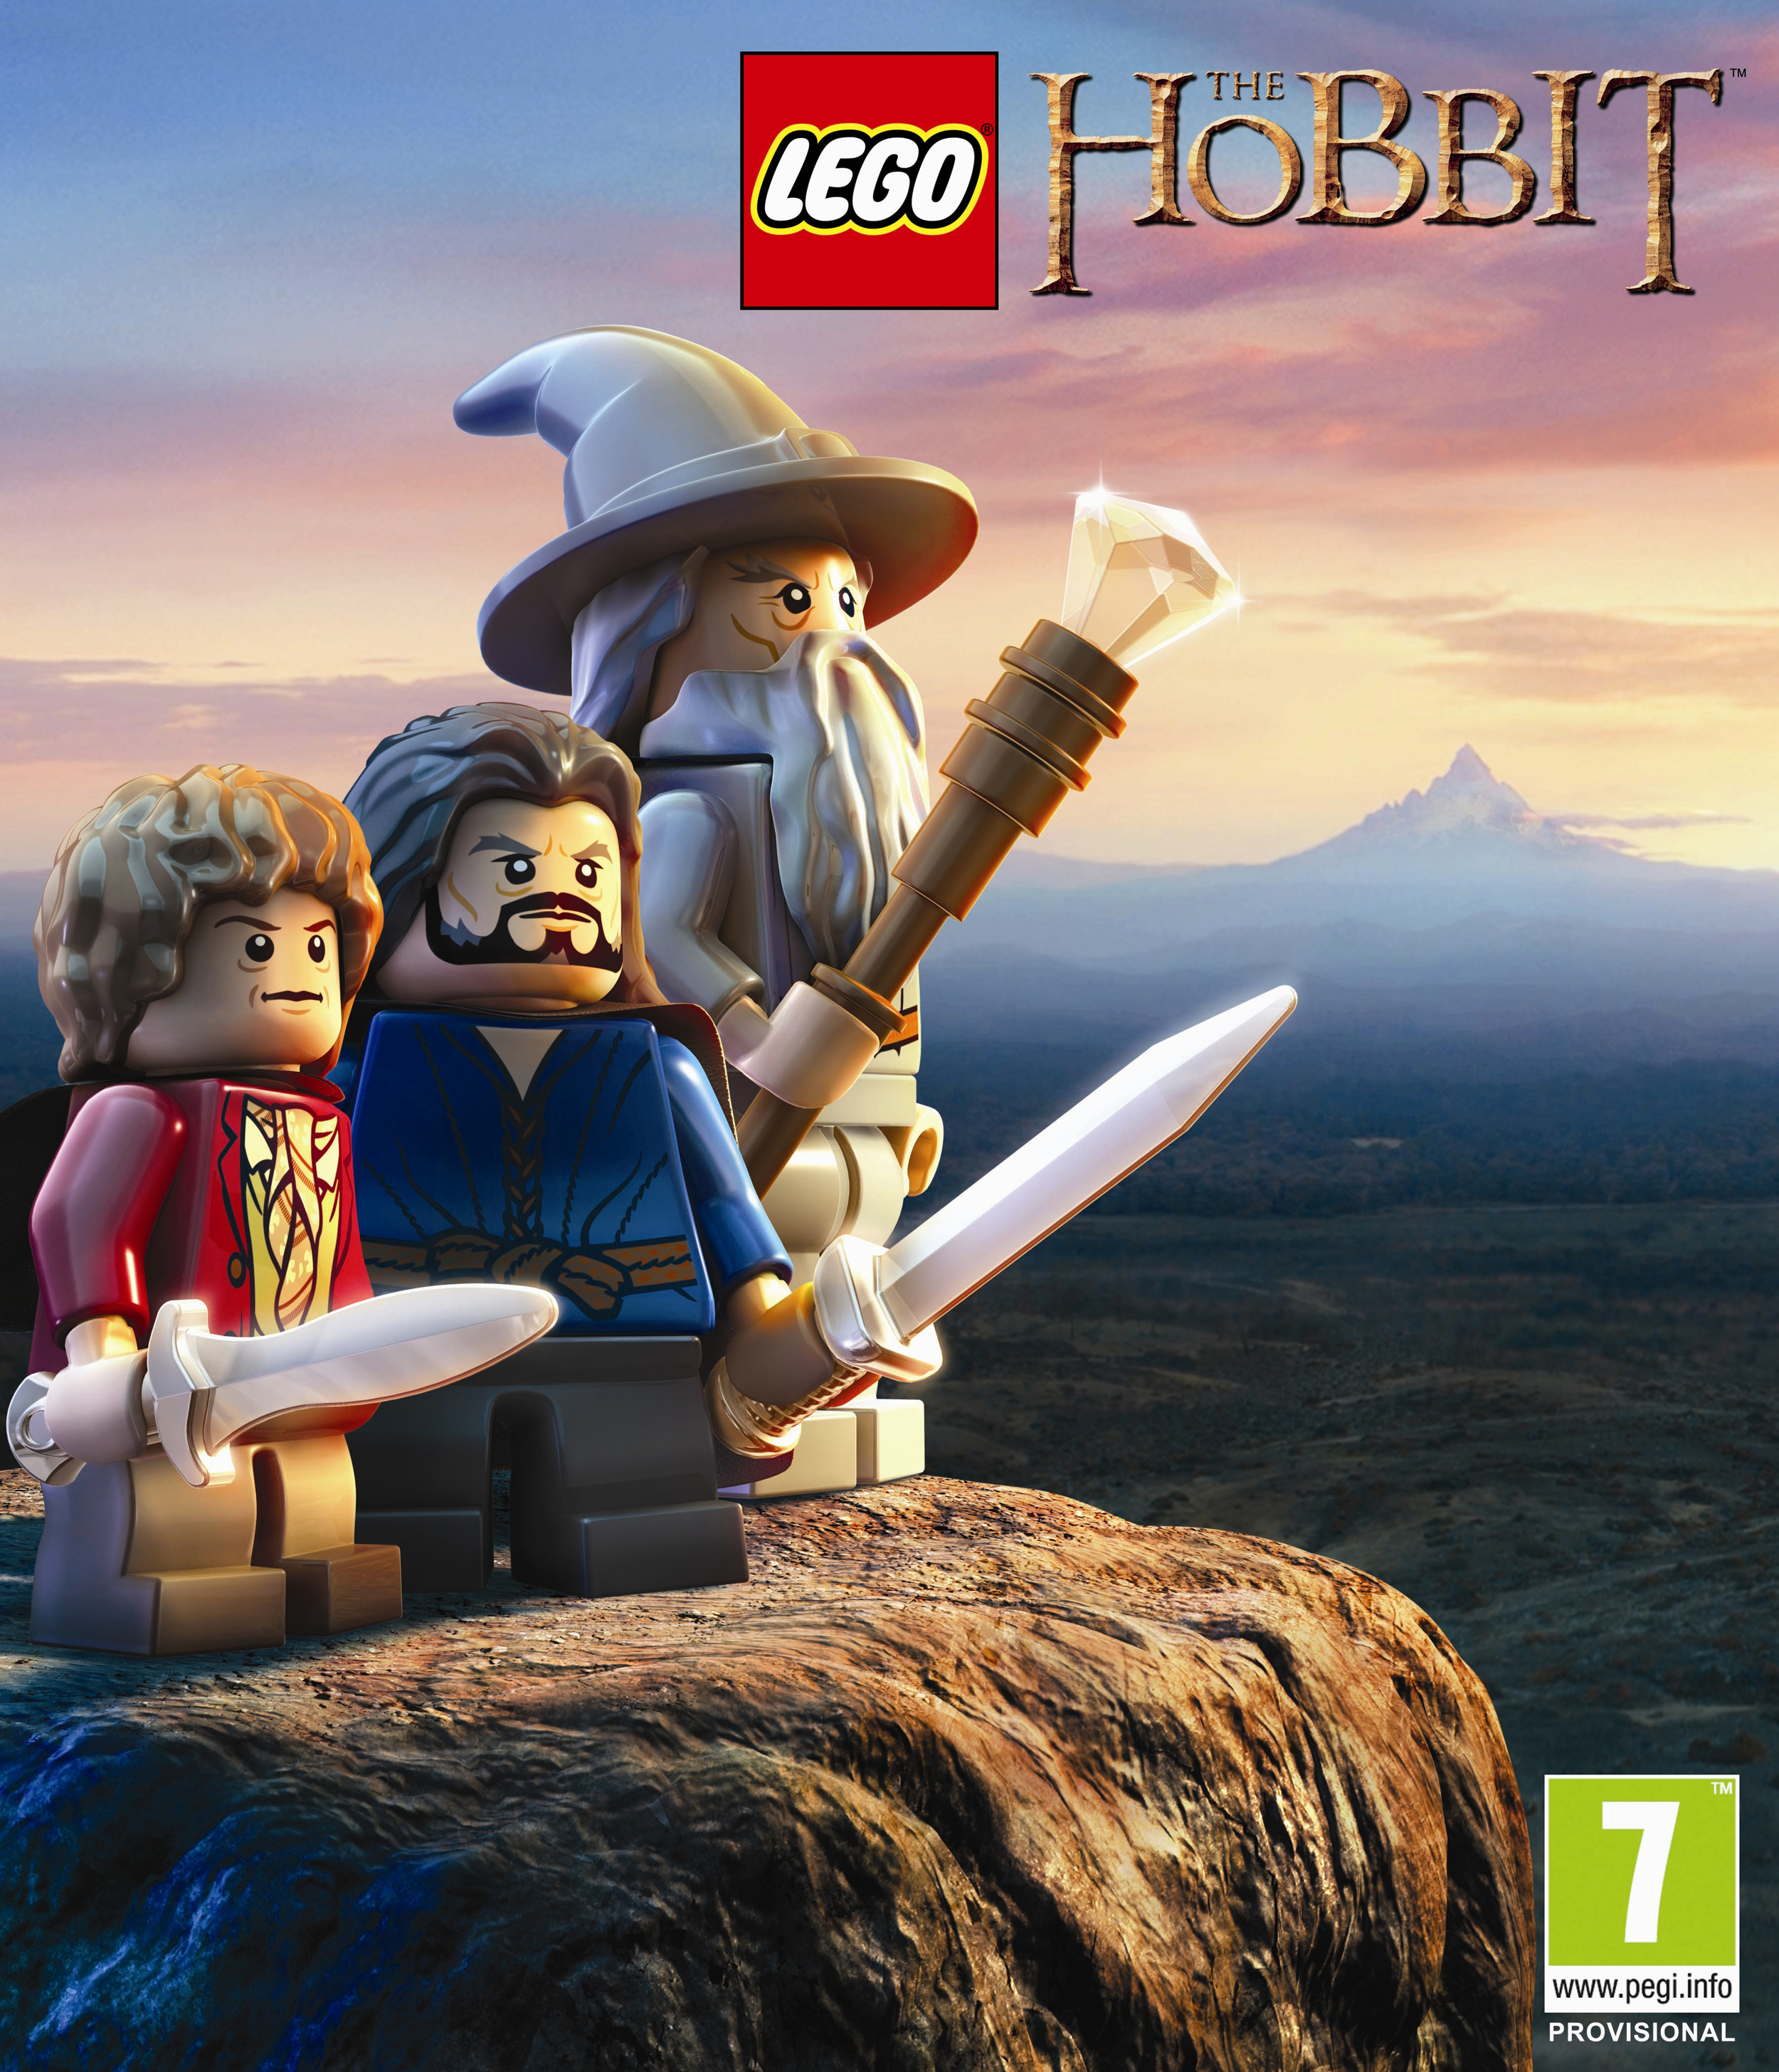 LEGO The Hobbit 25112013